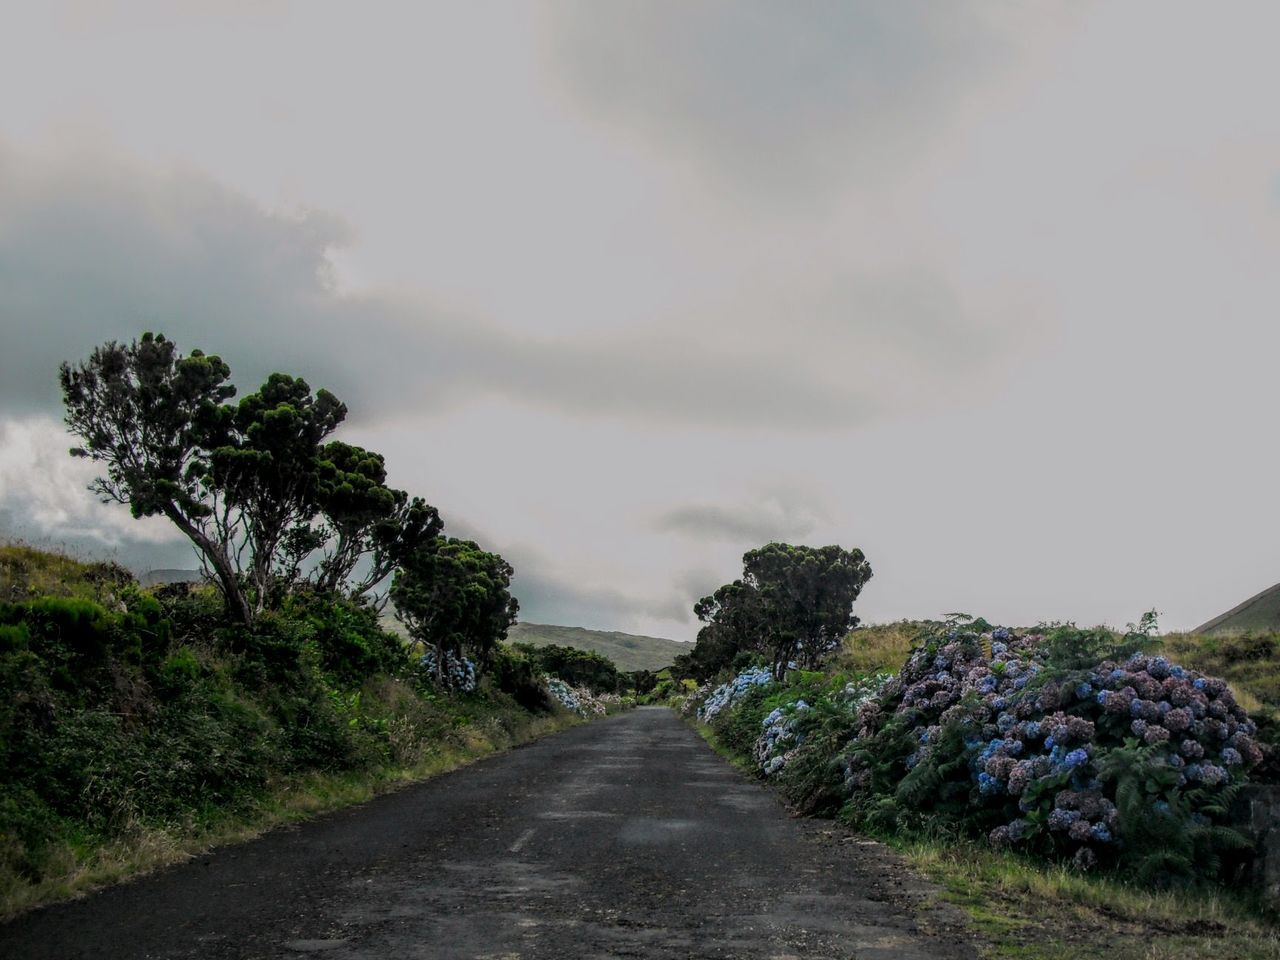 Azores - Pico Island Azores Islands Beauty In Nature Cloud Cloud - Sky Cloudy Country Road Day Diminishing Perspective Empty Empty Road Landscape Long Nature No People Outdoors Pico Plant Road Scenics Sky The Way Forward Tranquil Scene Tranquility Tree Vanishing Point